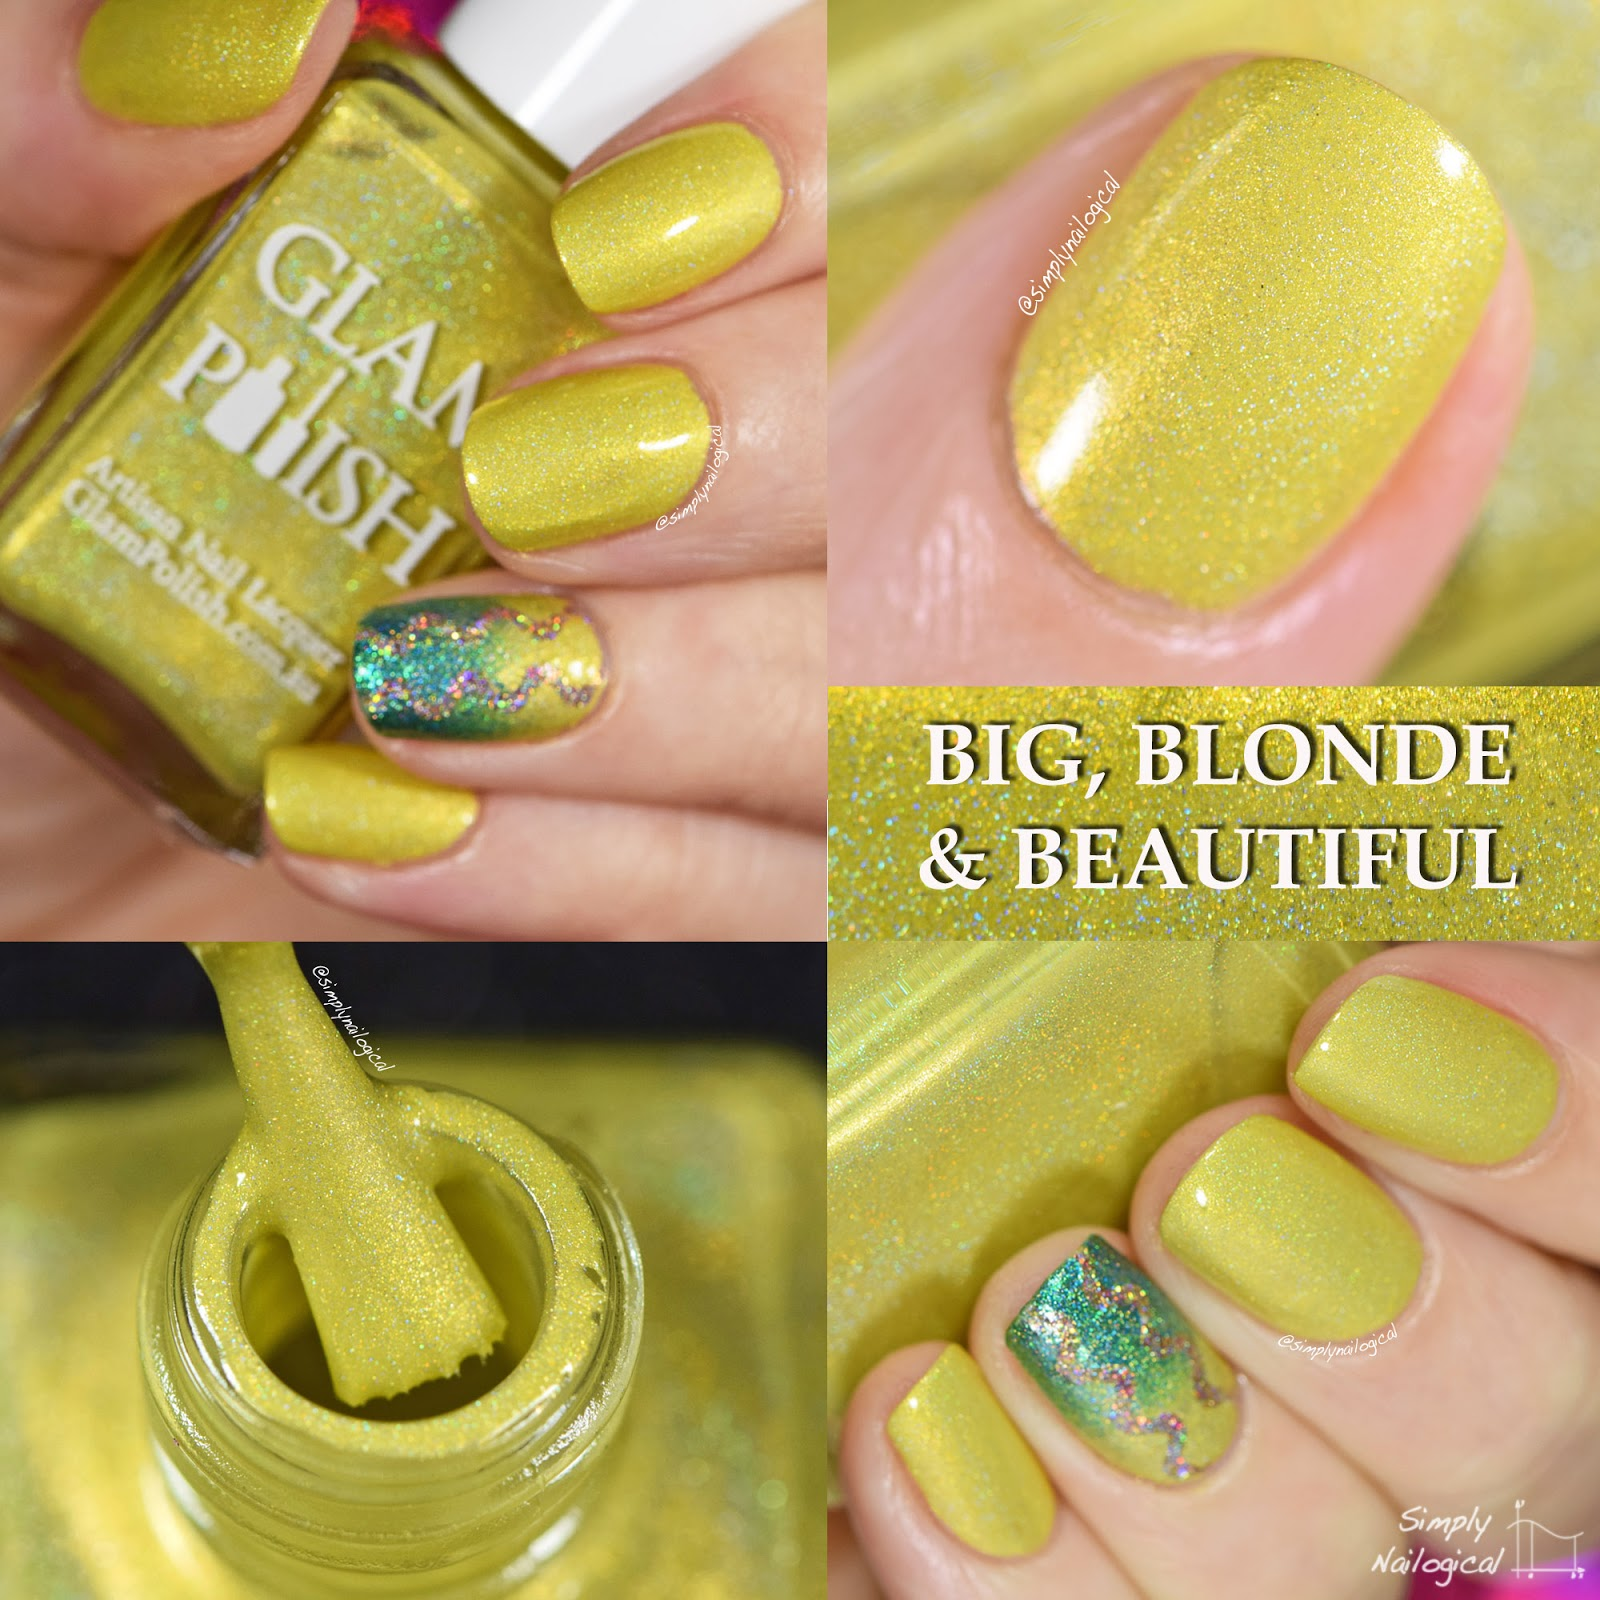 Glam Polish - Big, Blonde & Beautiful